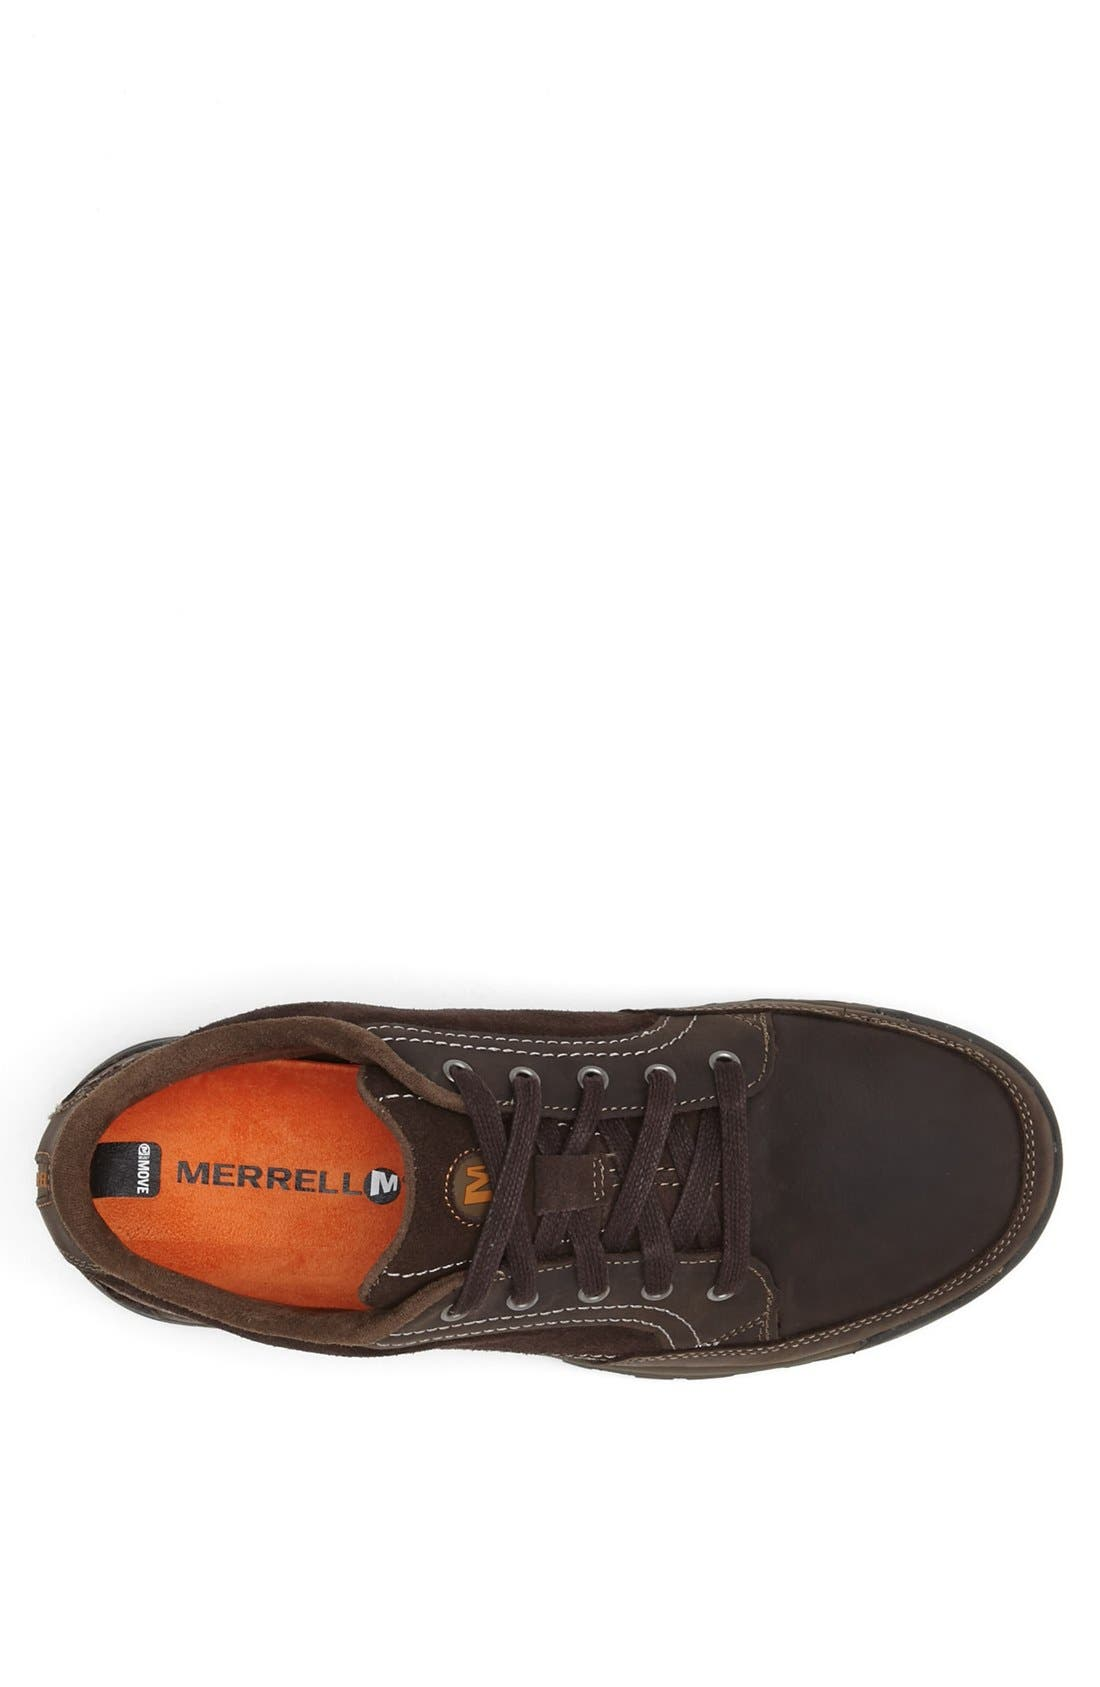 Alternate Image 3  - Merrell 'Traveler Sphere' Sneaker (Men)